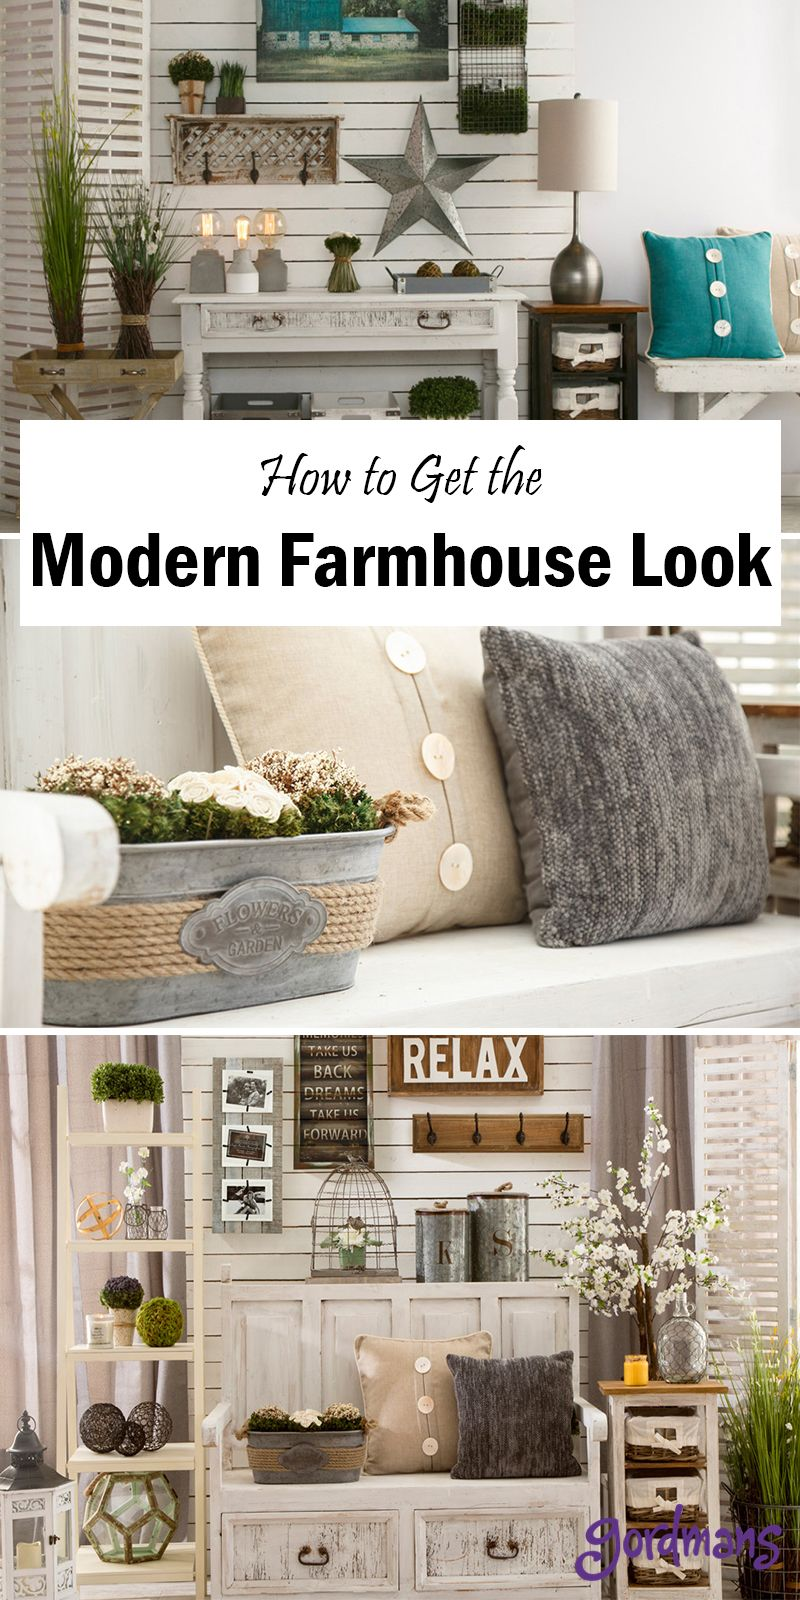 Superb Find Ways To Decorate Your Home With Modern Farmhouse Decor This Style Is Beautiful For All Homes And Will Add That Country Look Any Room